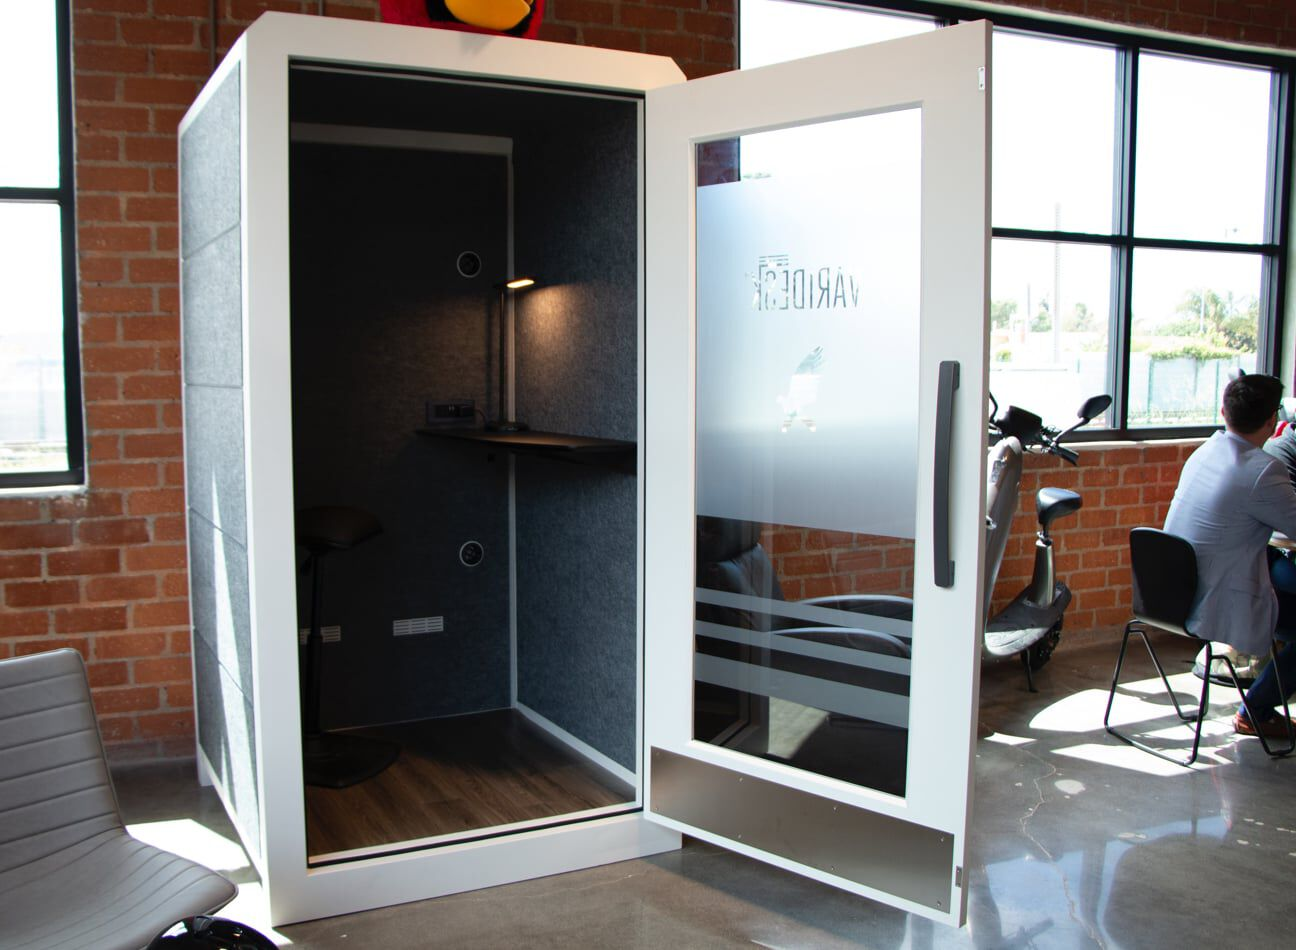 vari privacy booth at hawke media  image